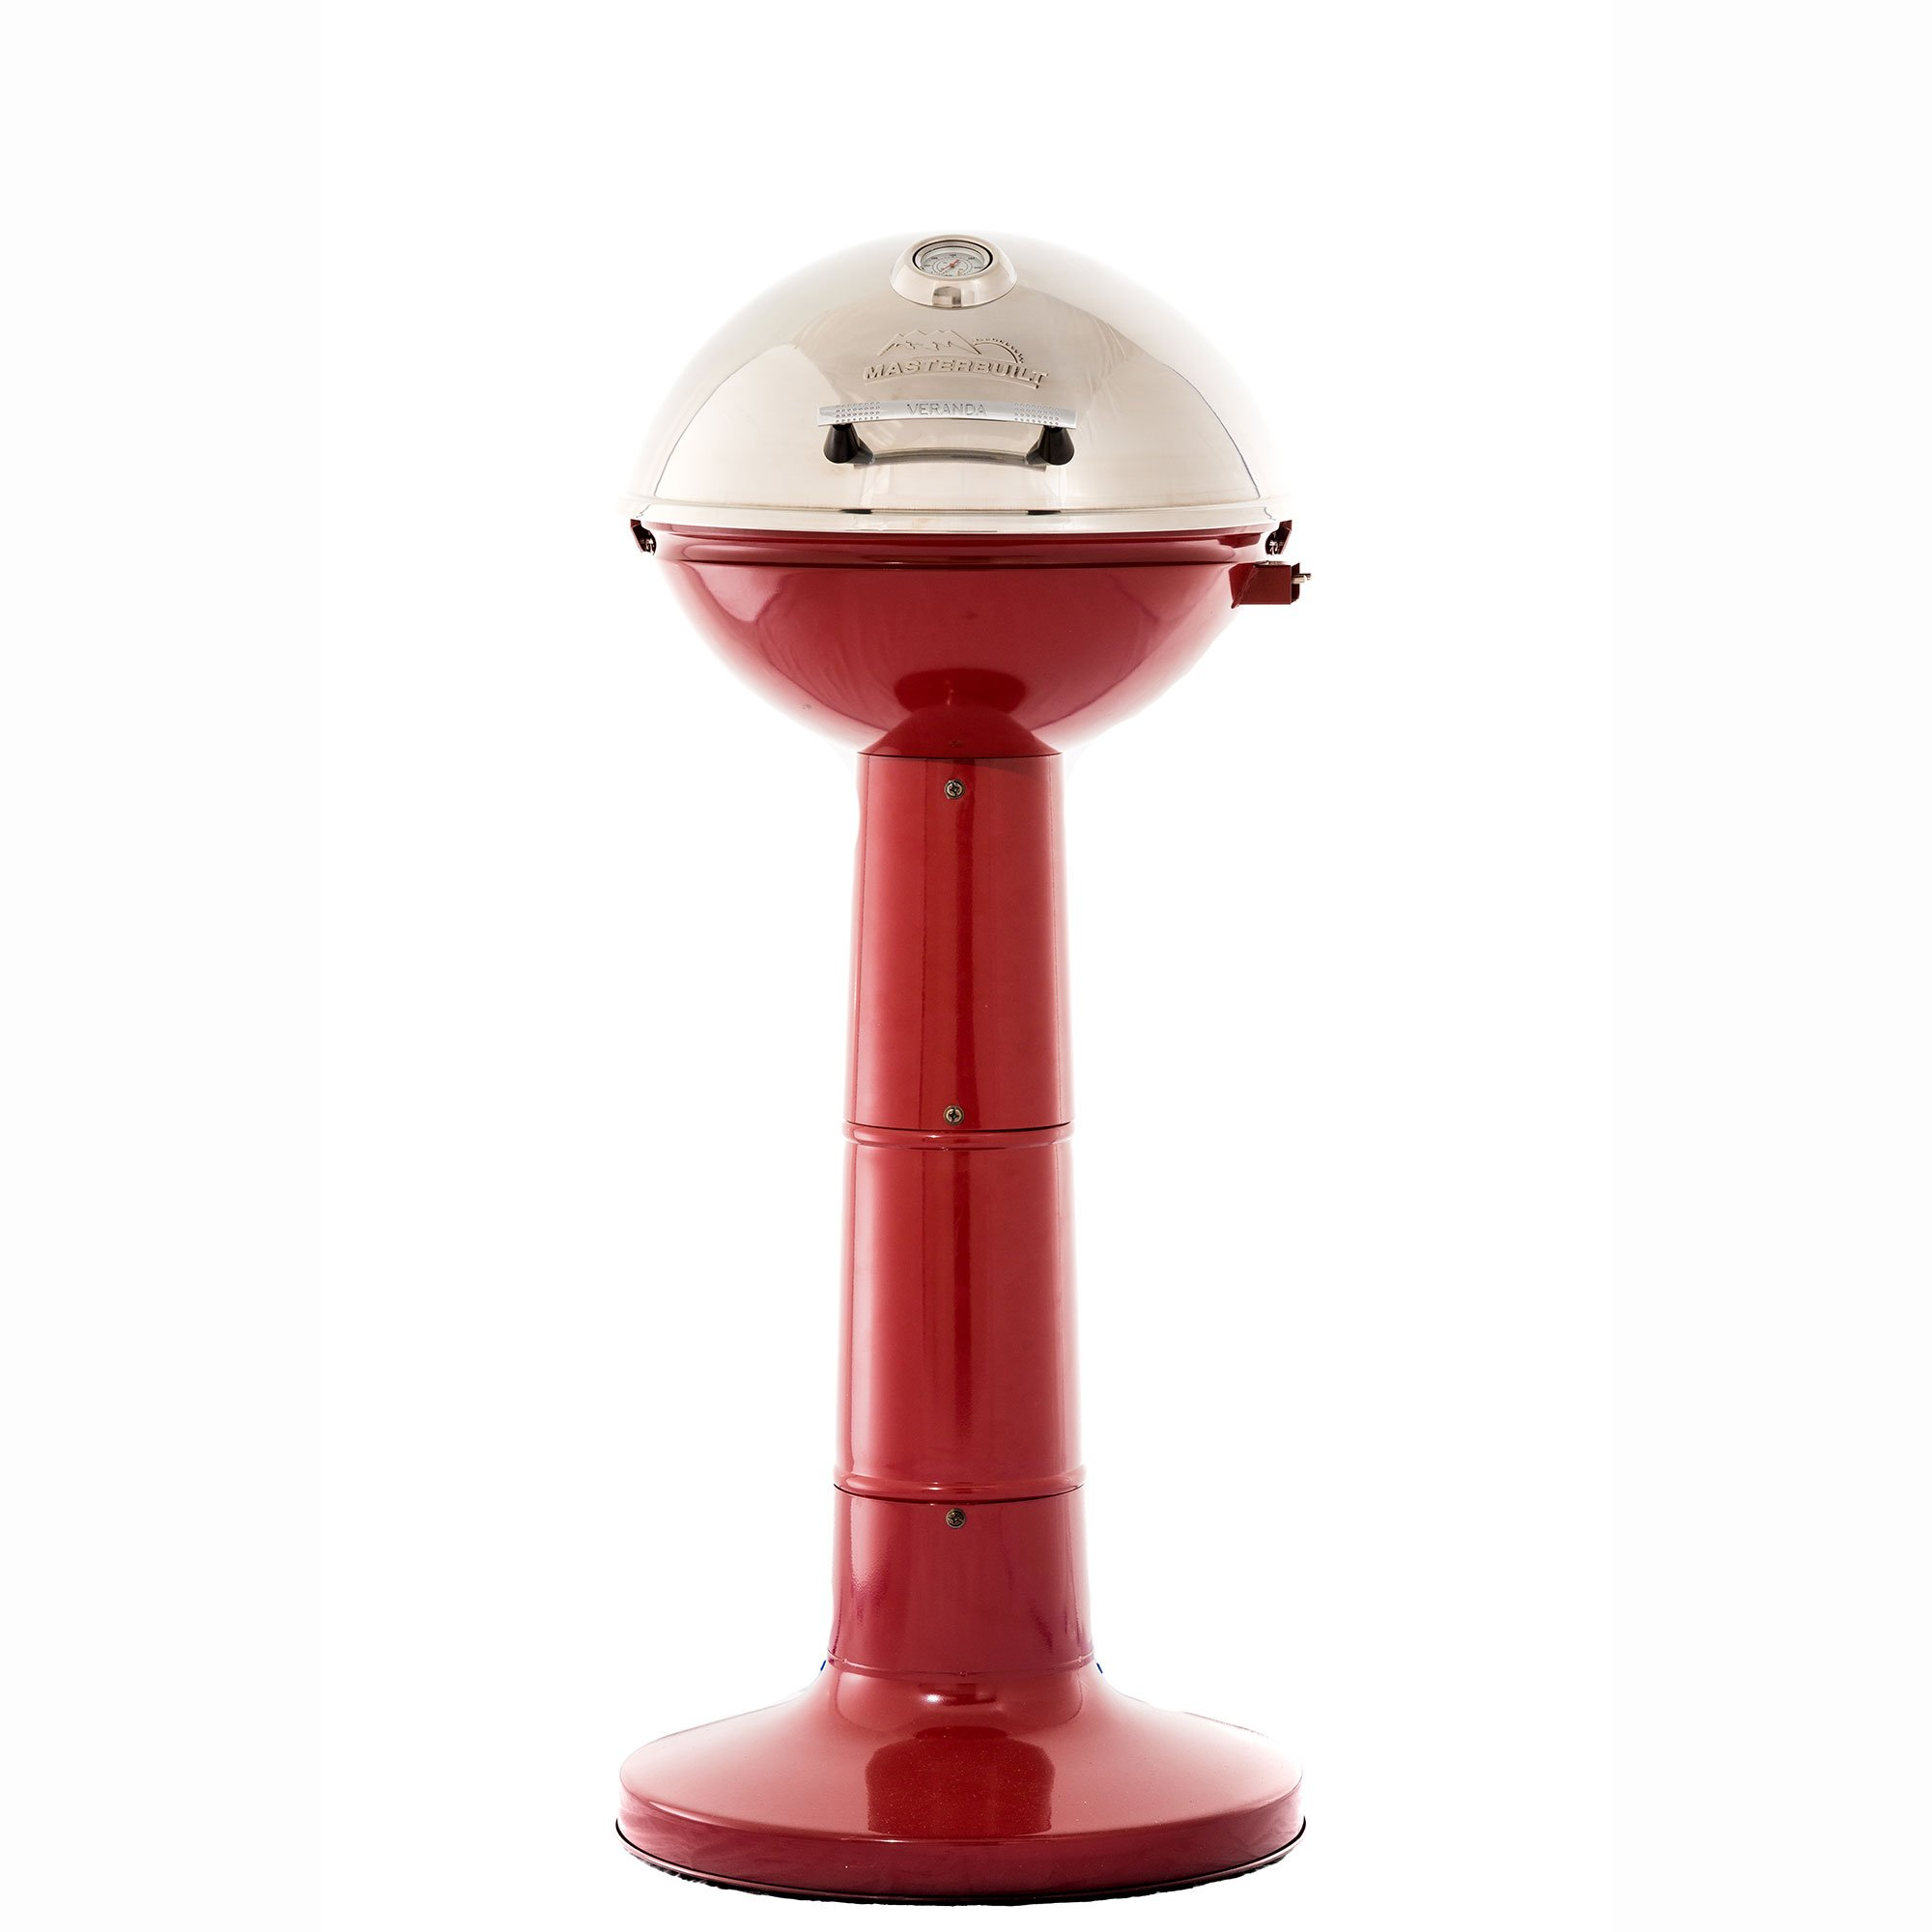 Masterbuilt Verdana Outdoor Patio 18 Inch 1650W Electric Pedestal Grill, Red by Regalo (Image #1)